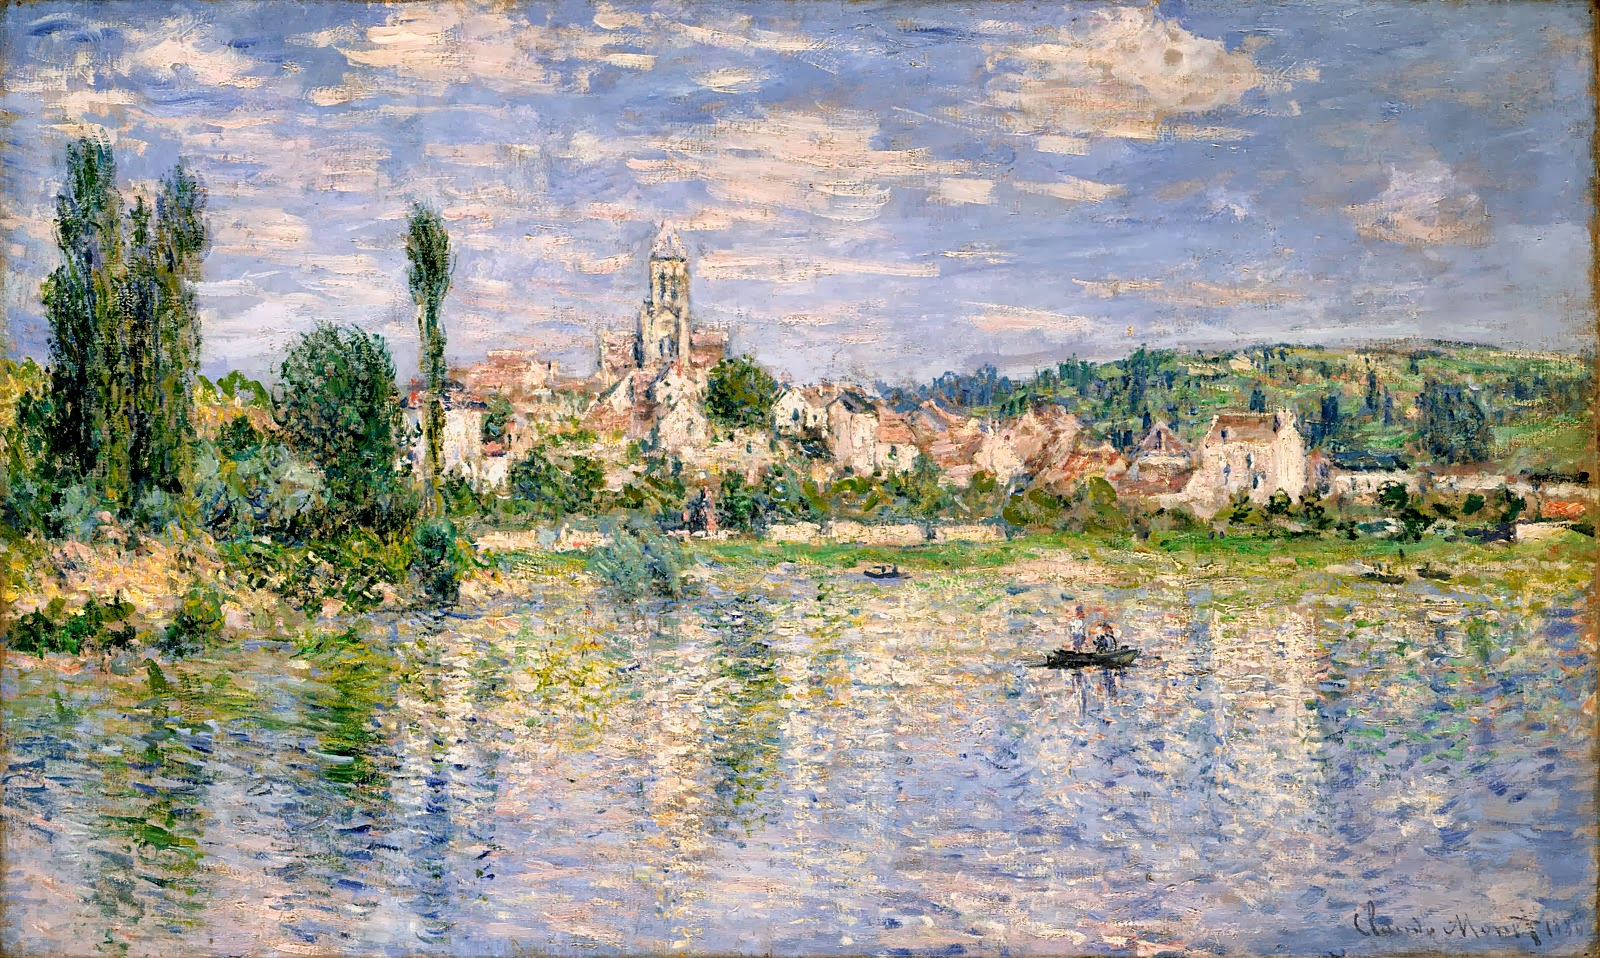 art artists claude monet part 11 1880 1881 claude monet 1880 veacutetheuil in summer oil on canvas 60 x 99 7 cm national gallery of art washington d c